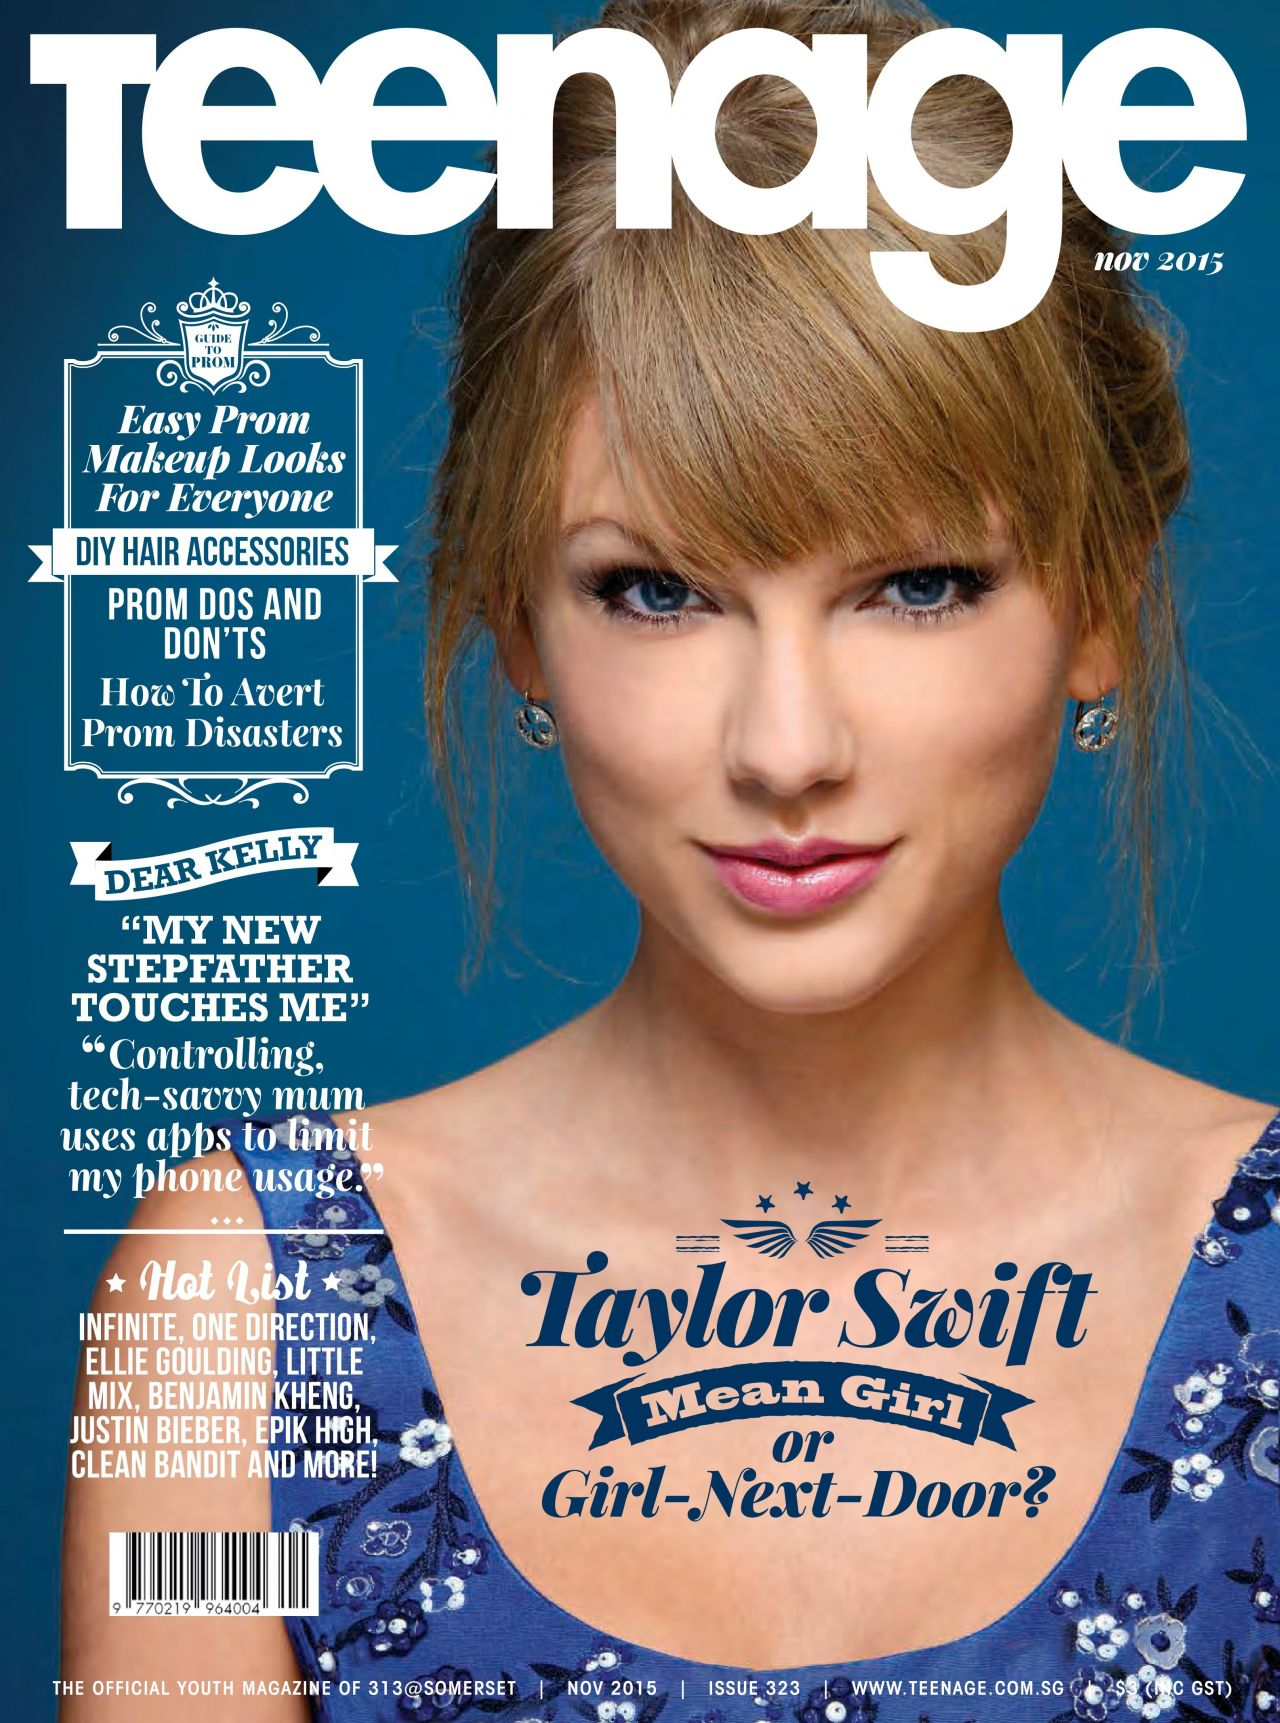 Taylor Swift - Teenage Magazine November 2015 Cover